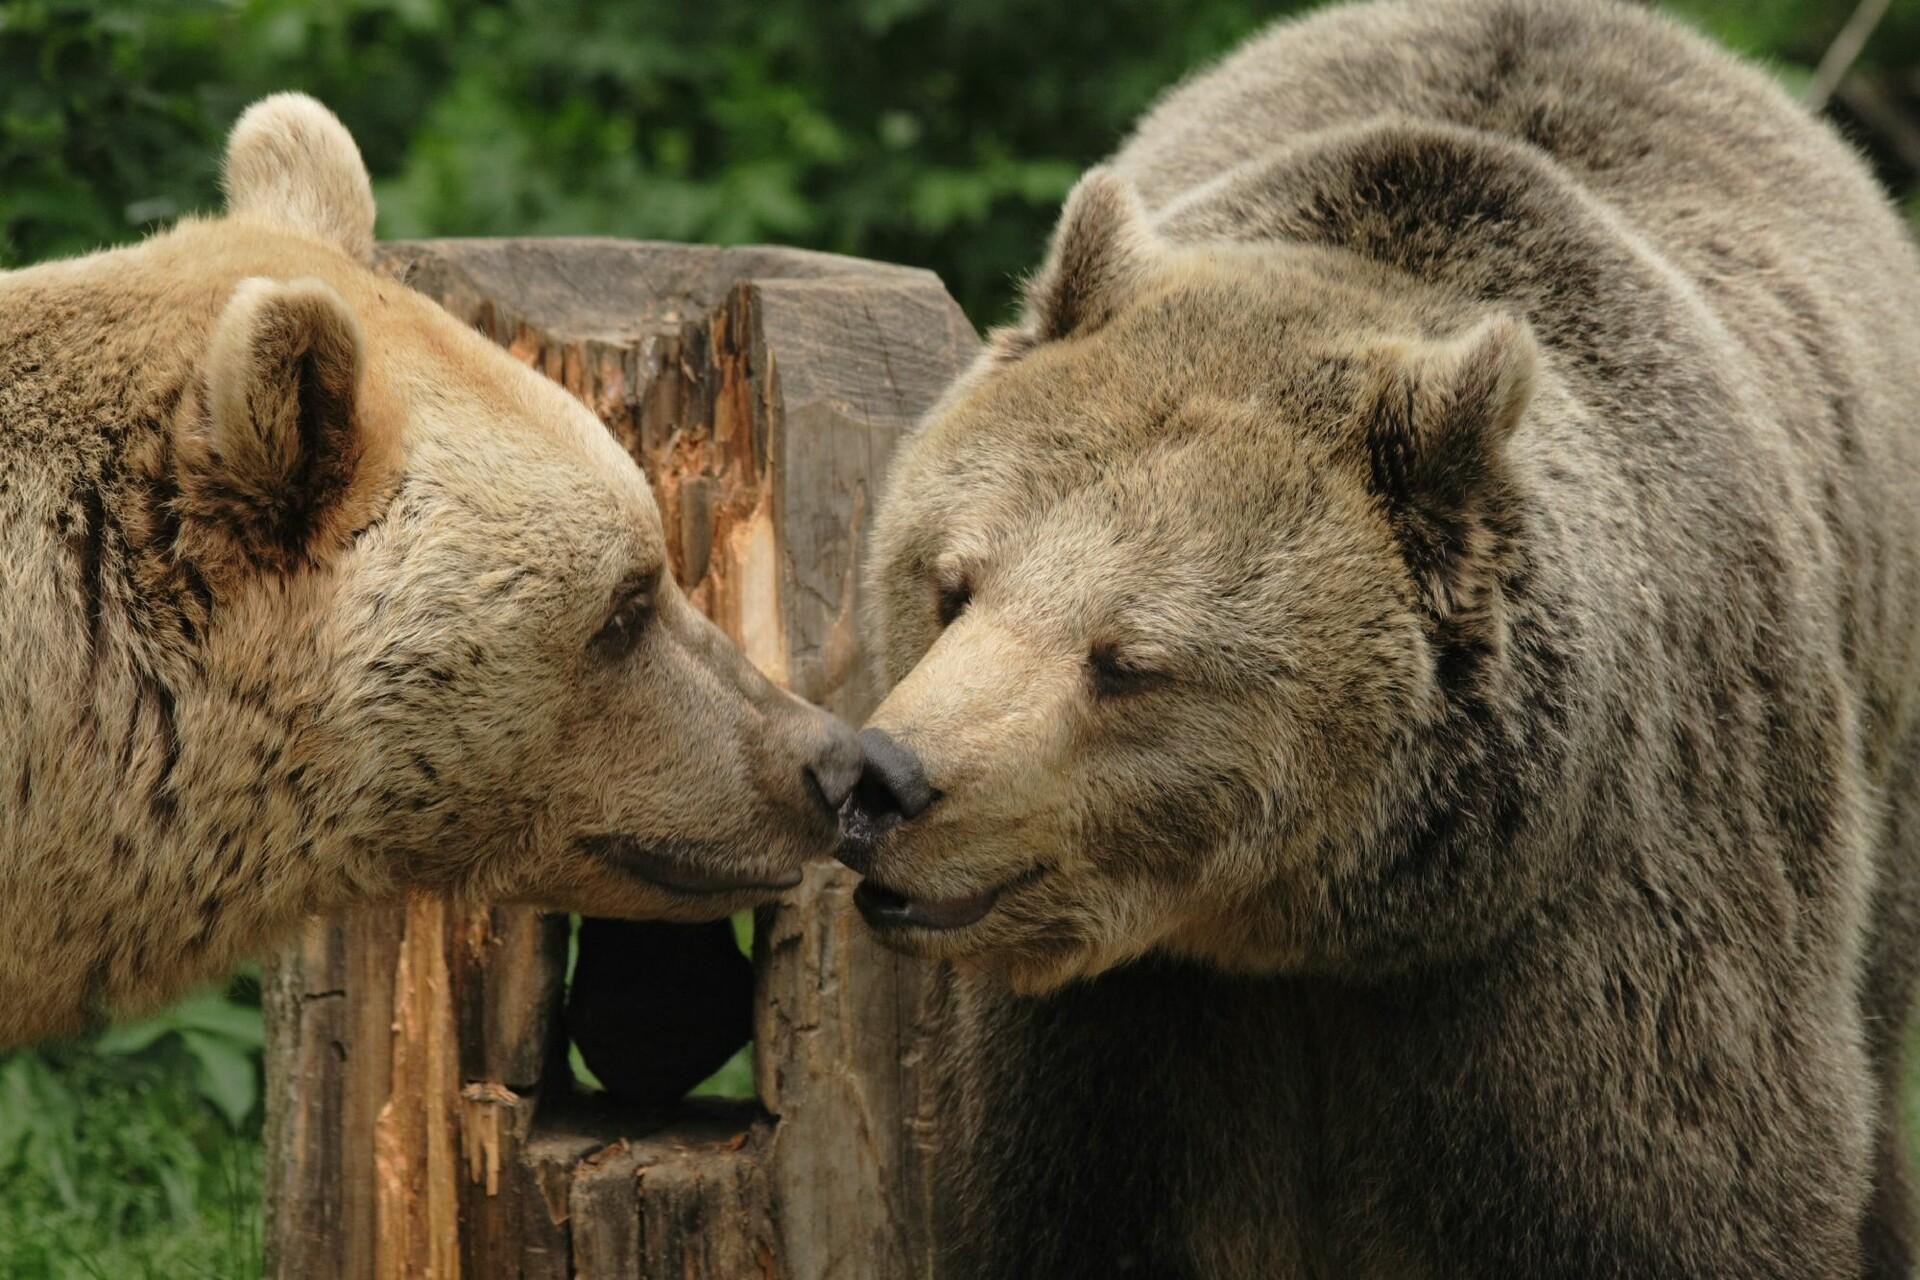 Bears Vinzenz and Brumca touching each others noses